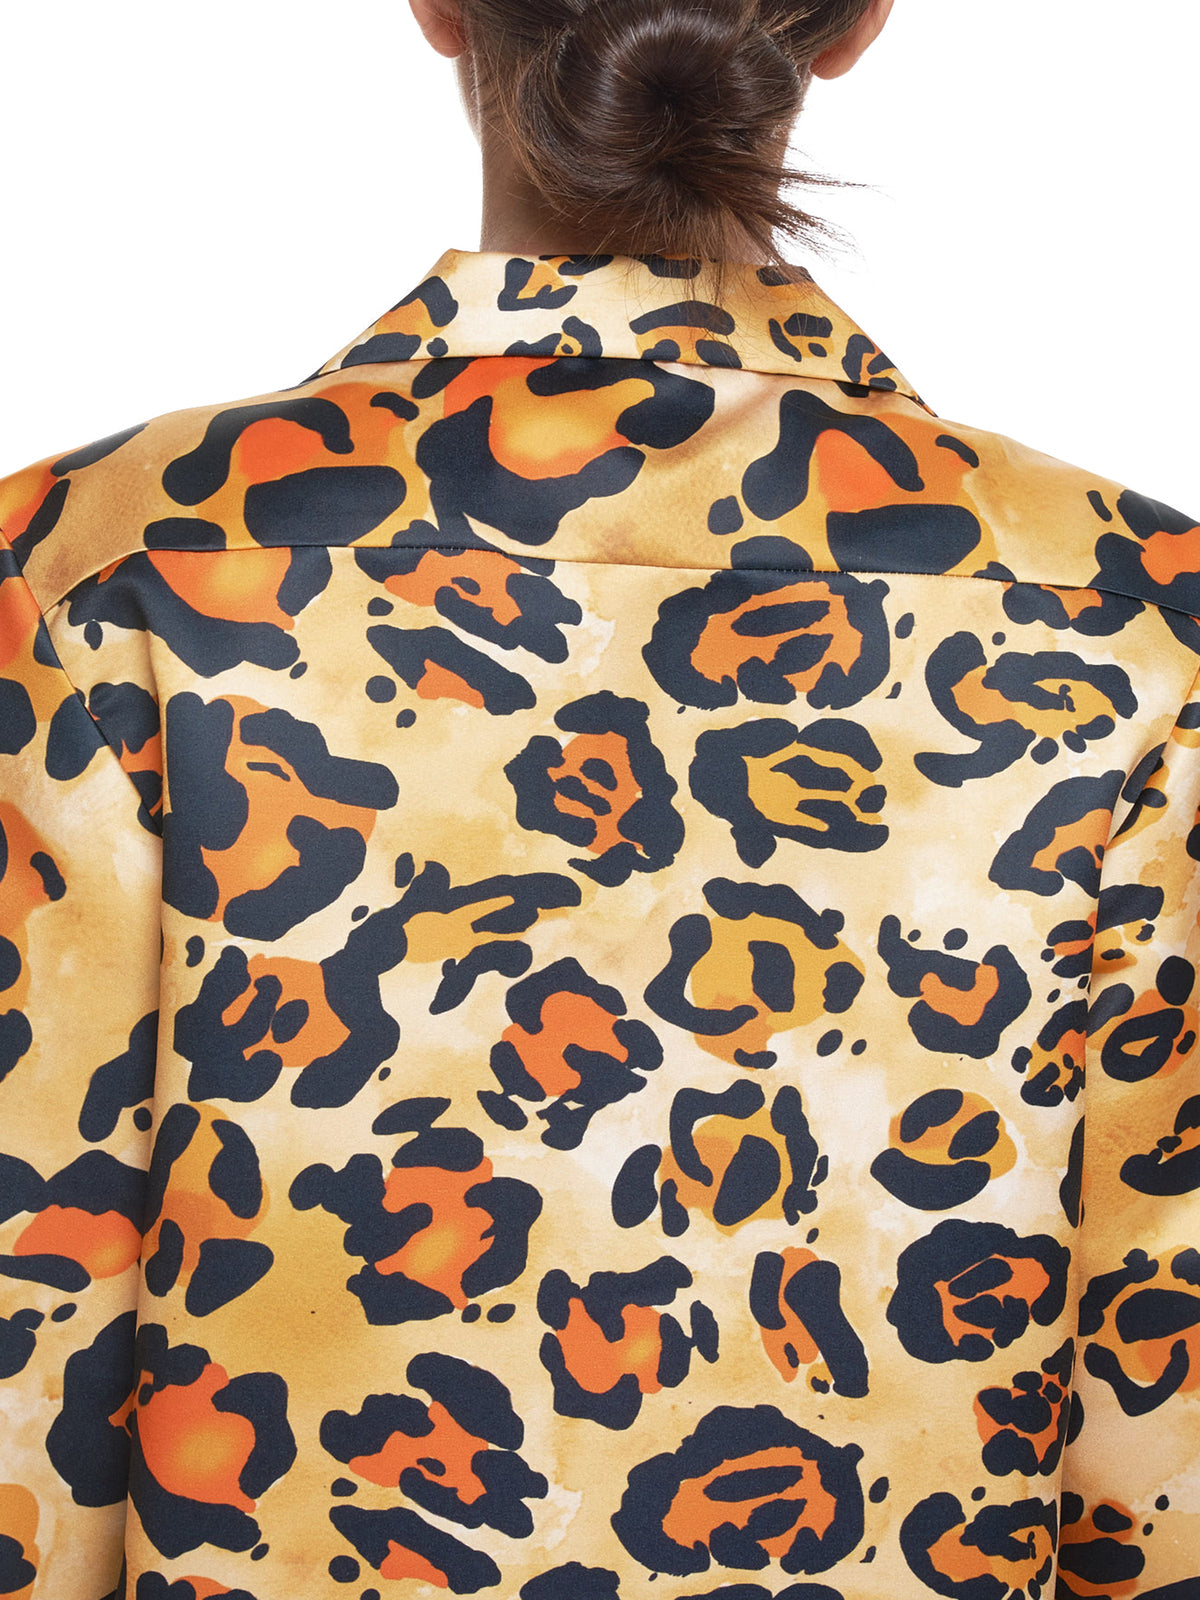 Richard Quinn Leopard Shirt - Hlorenzo Detail 2